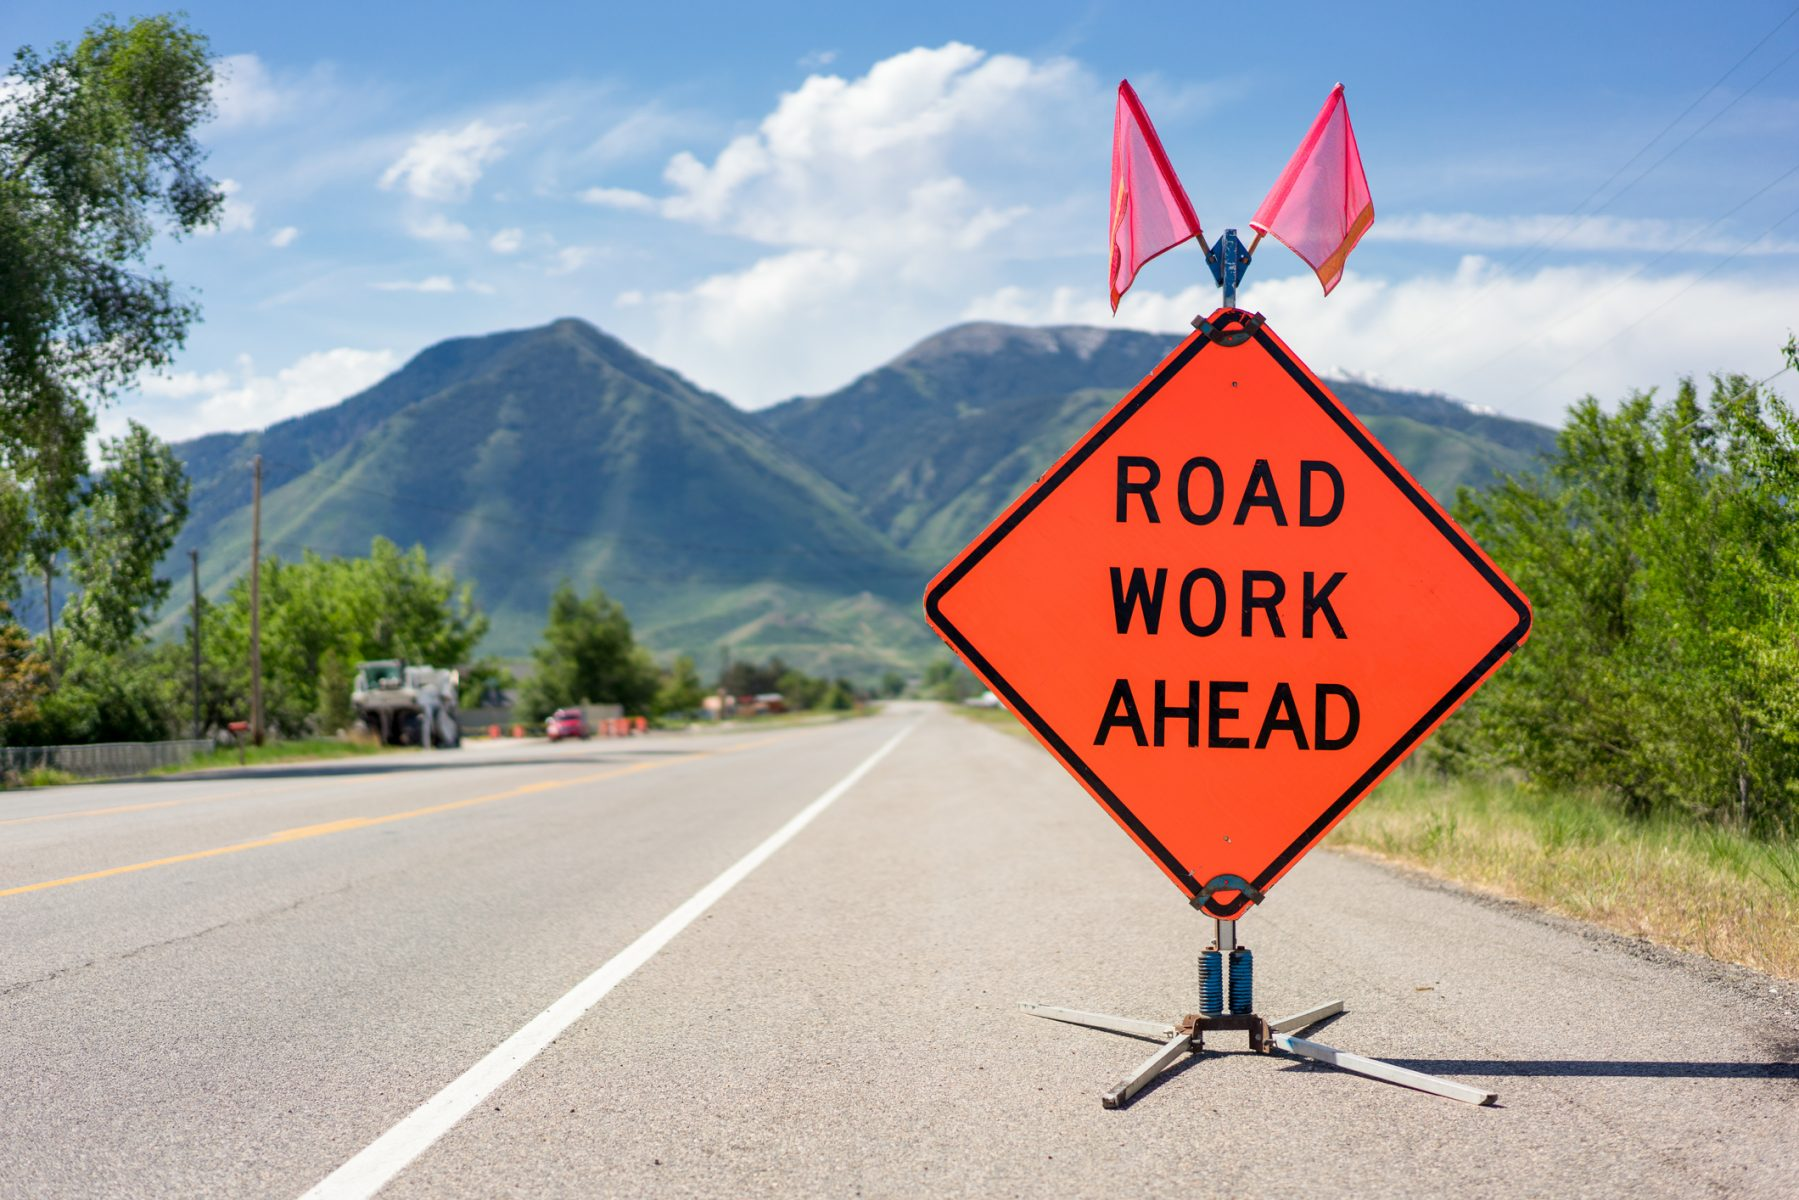 construction-road-work-ahead-image